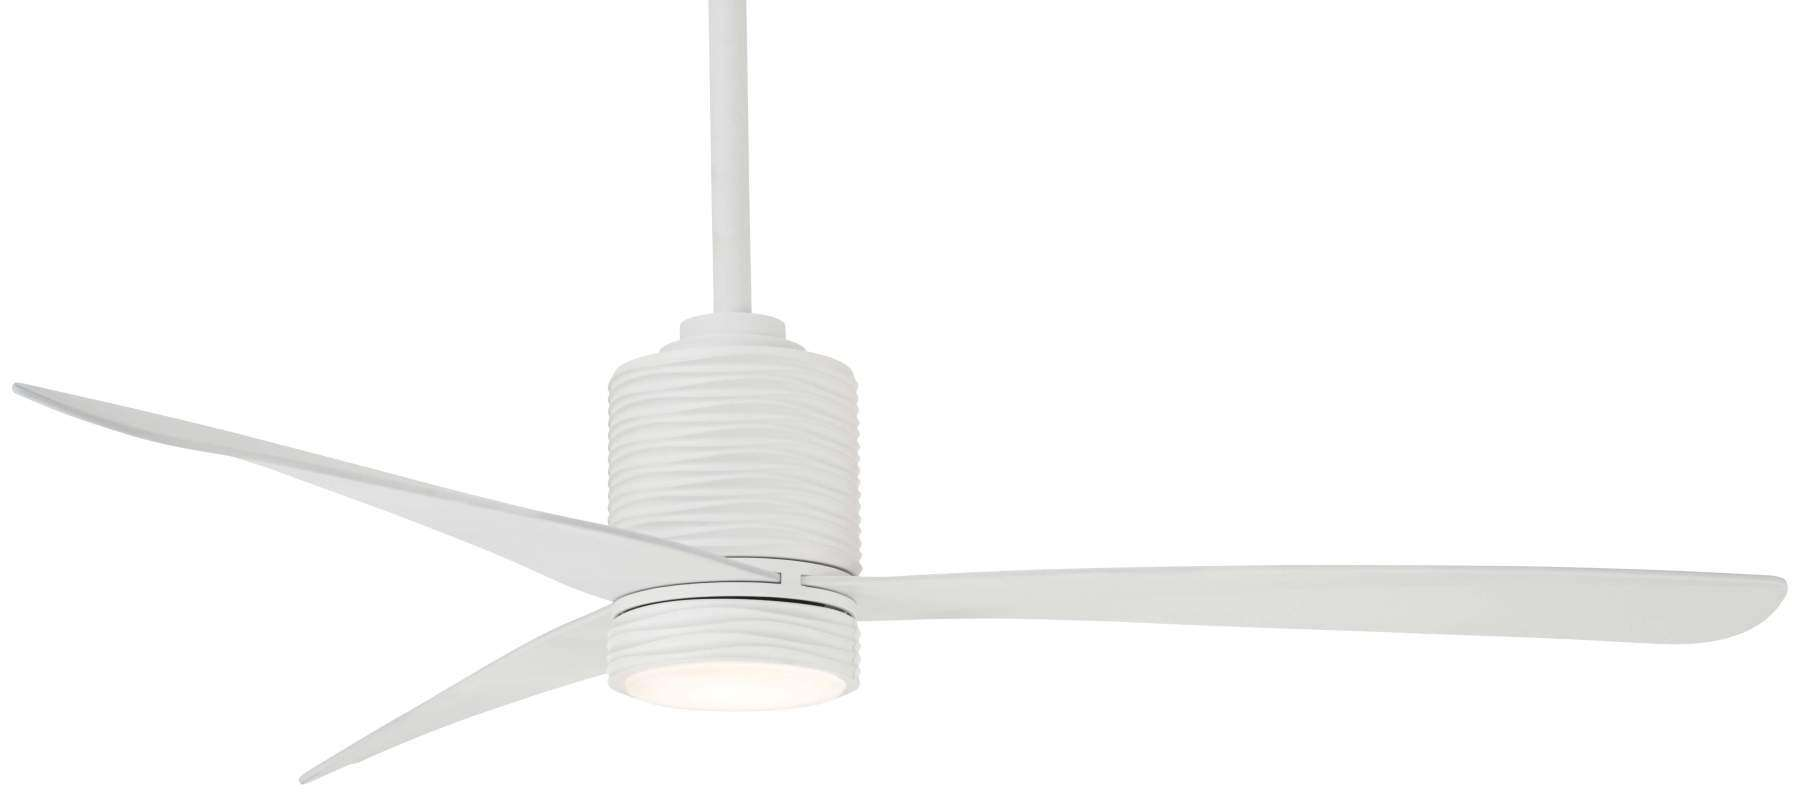 "Mojave 56"" LED Ceiling Fan In Flat White"